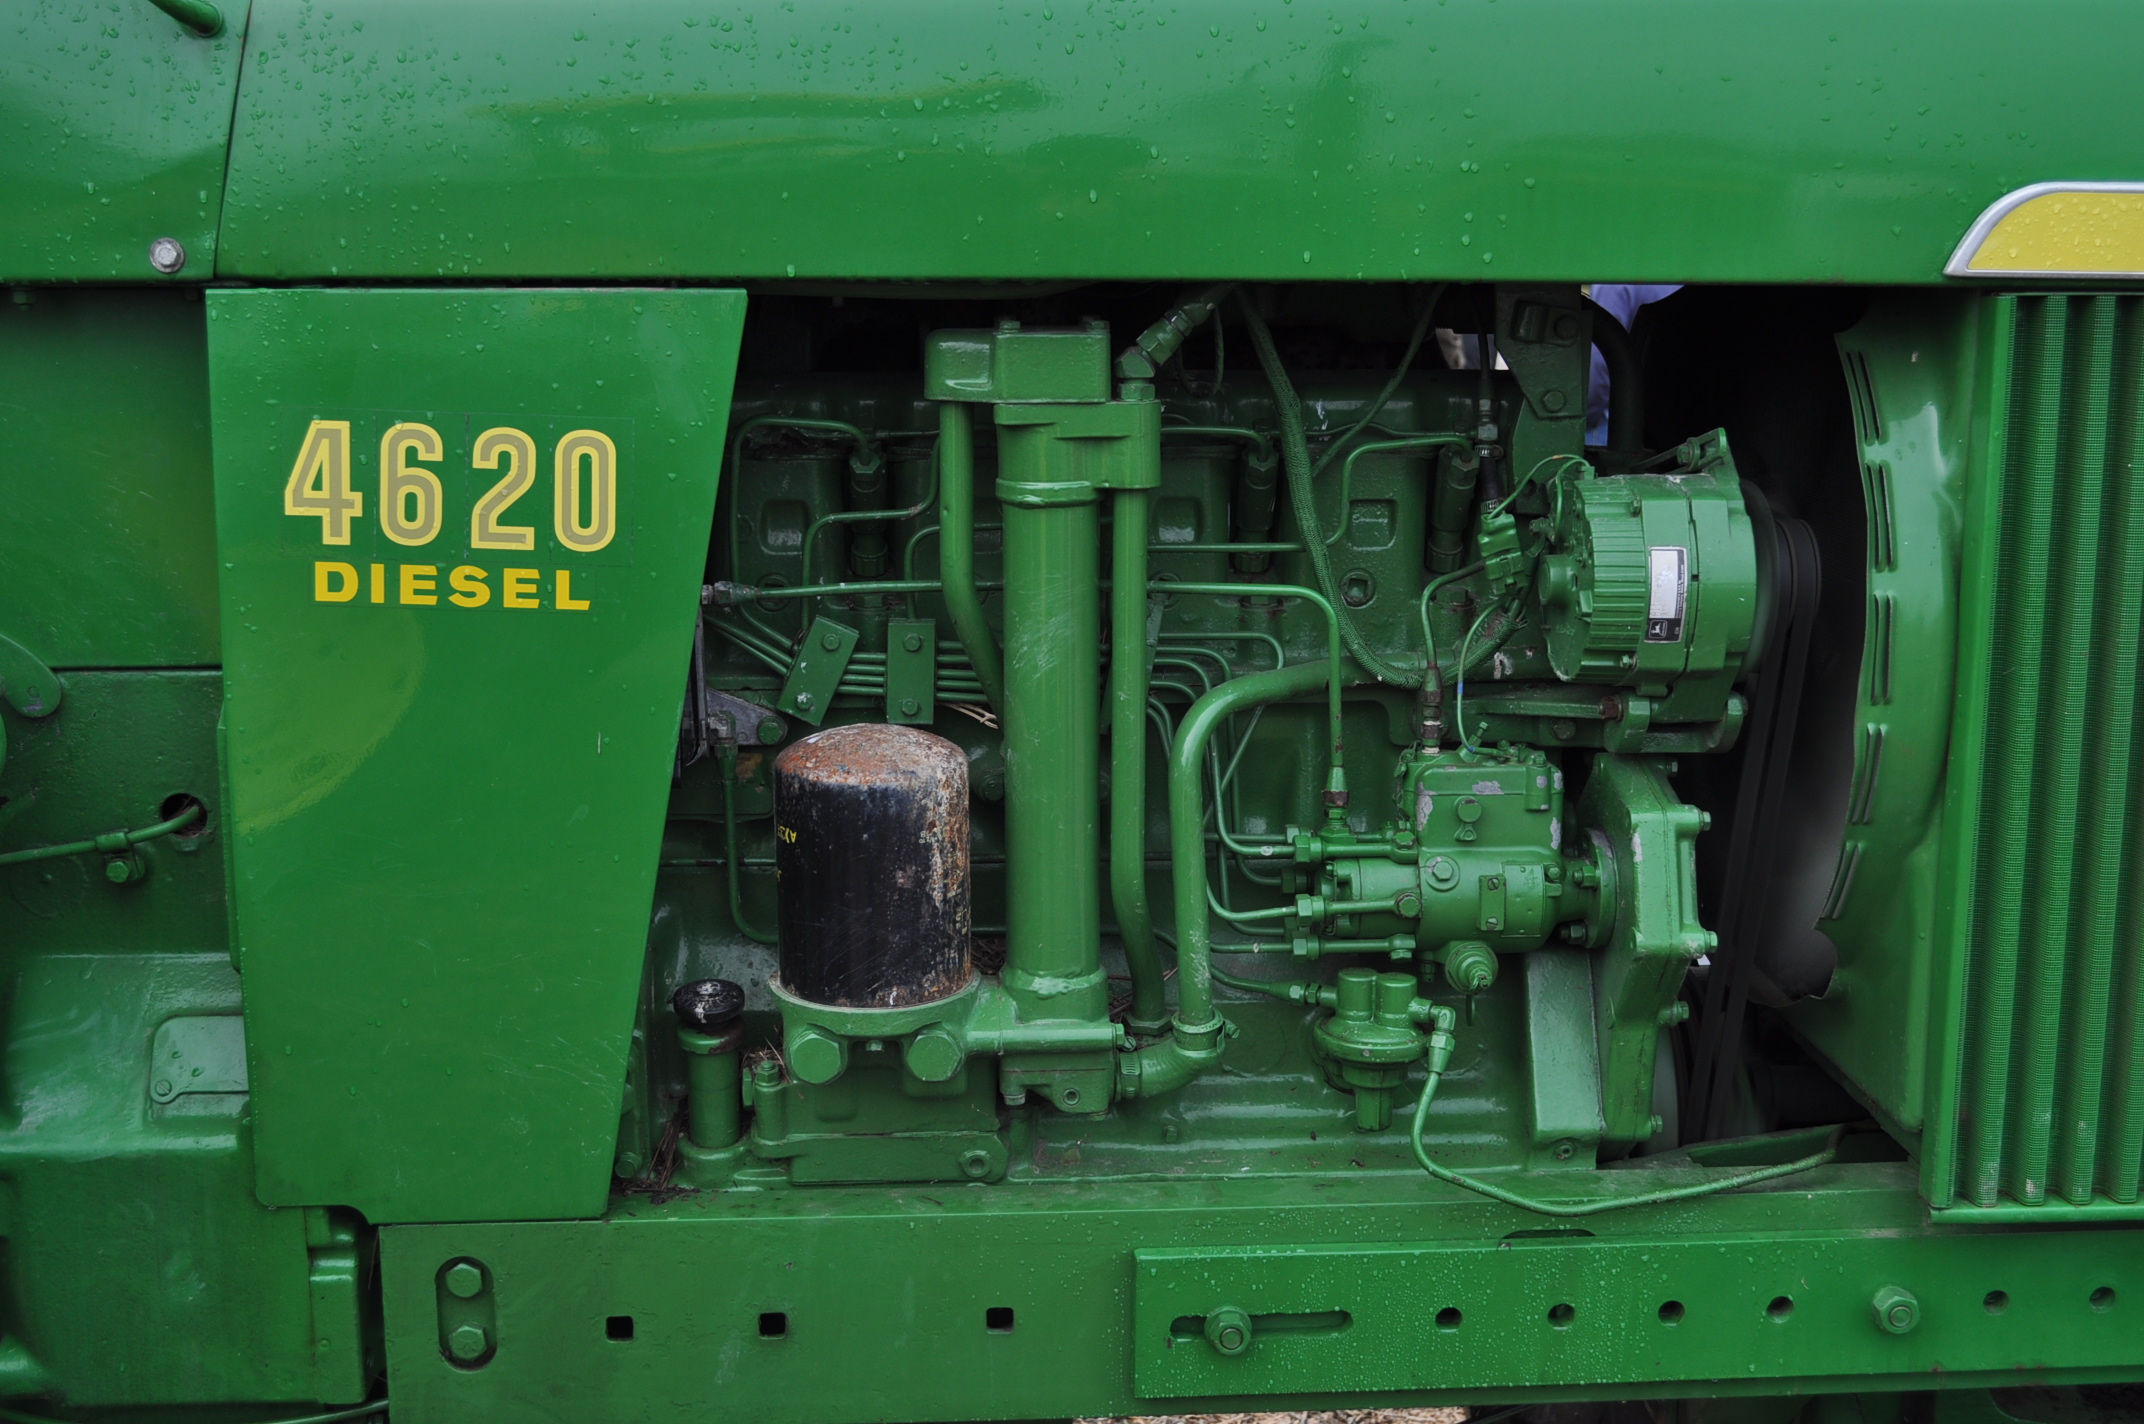 John Deere 4520 tractor, ***4520 frame with 4620 engine**** diesel, 18.4-38 new inside rear - Image 9 of 17